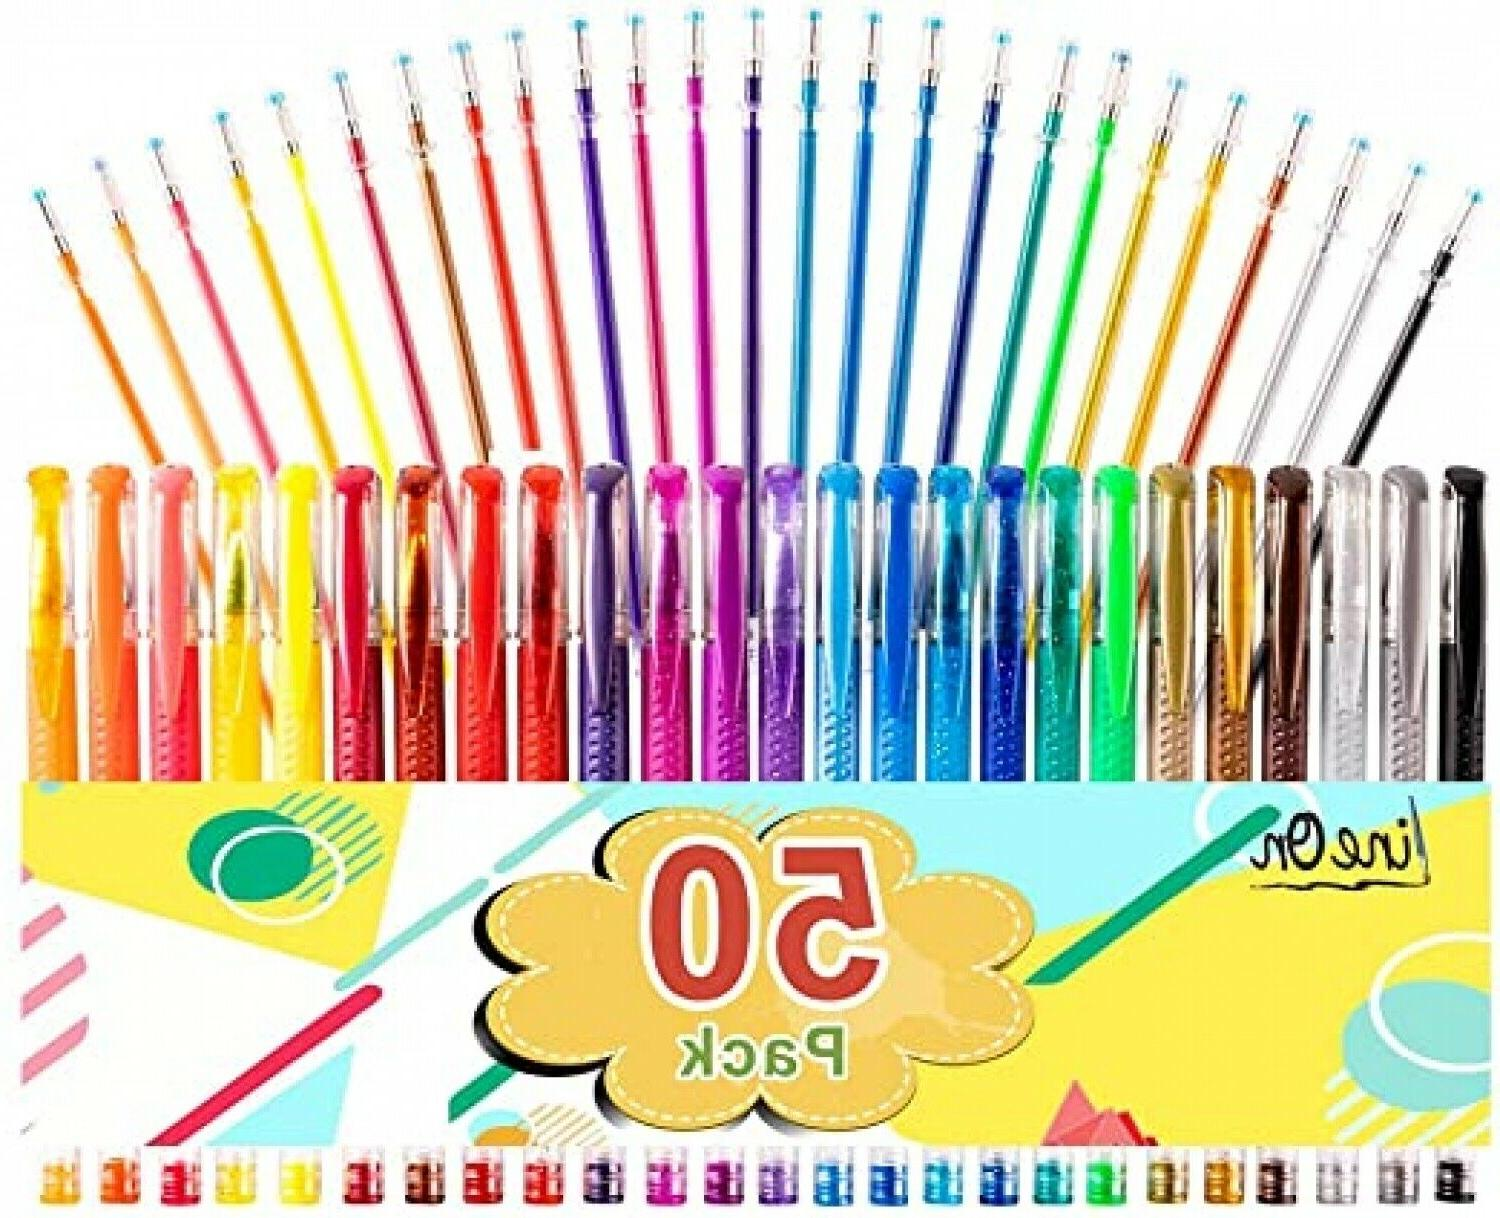 50 Colored Pens Kids Crafting Drawing Adult Gift